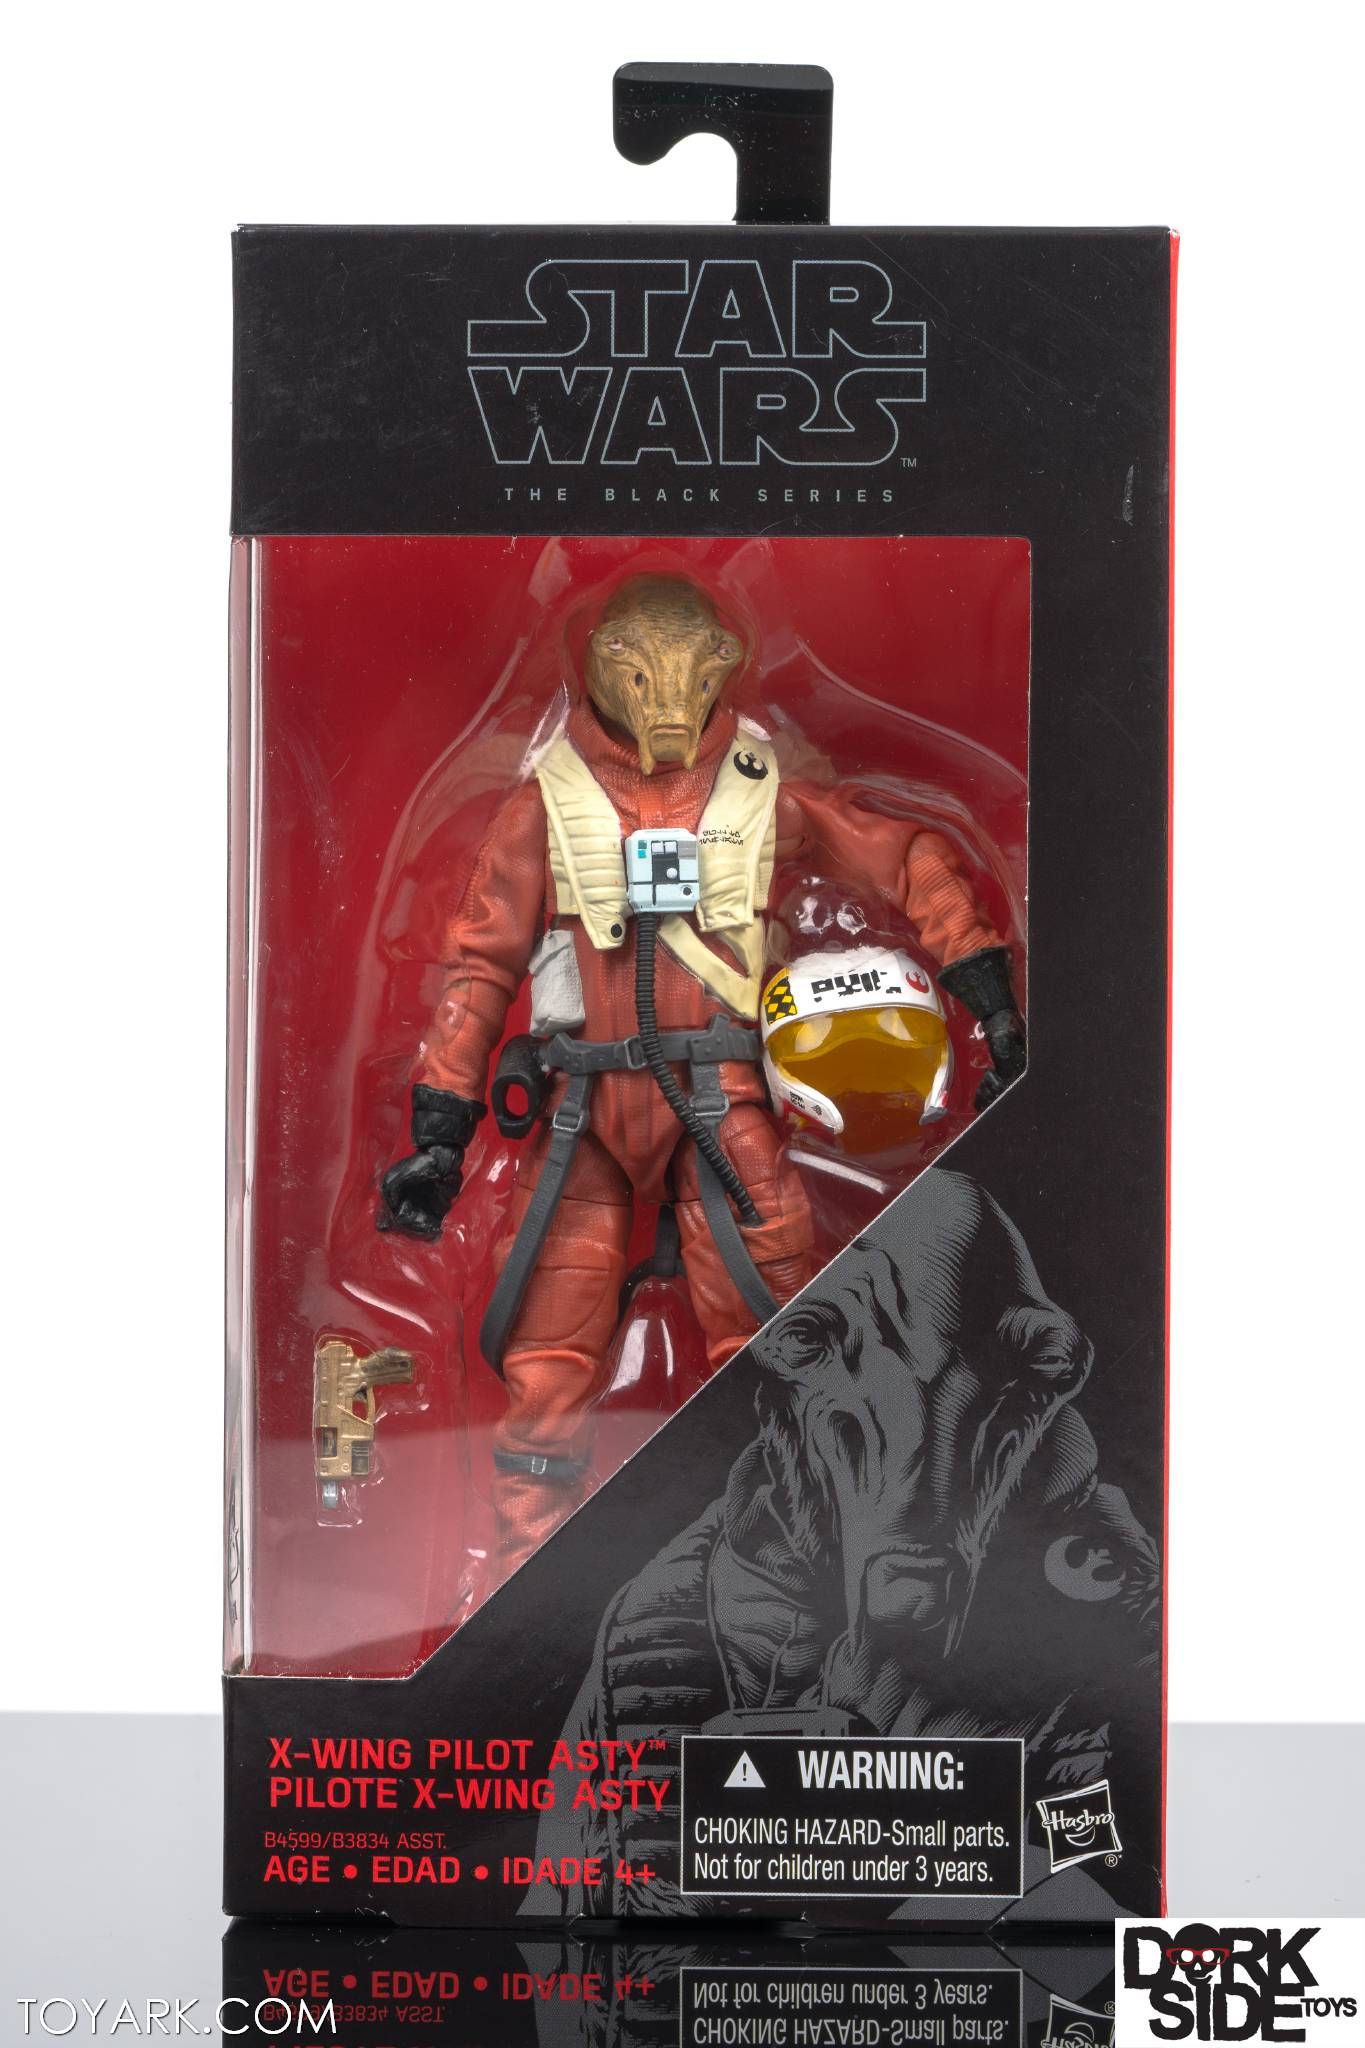 STAR WARS EPISODE 7 X-WING PILOT ASTY